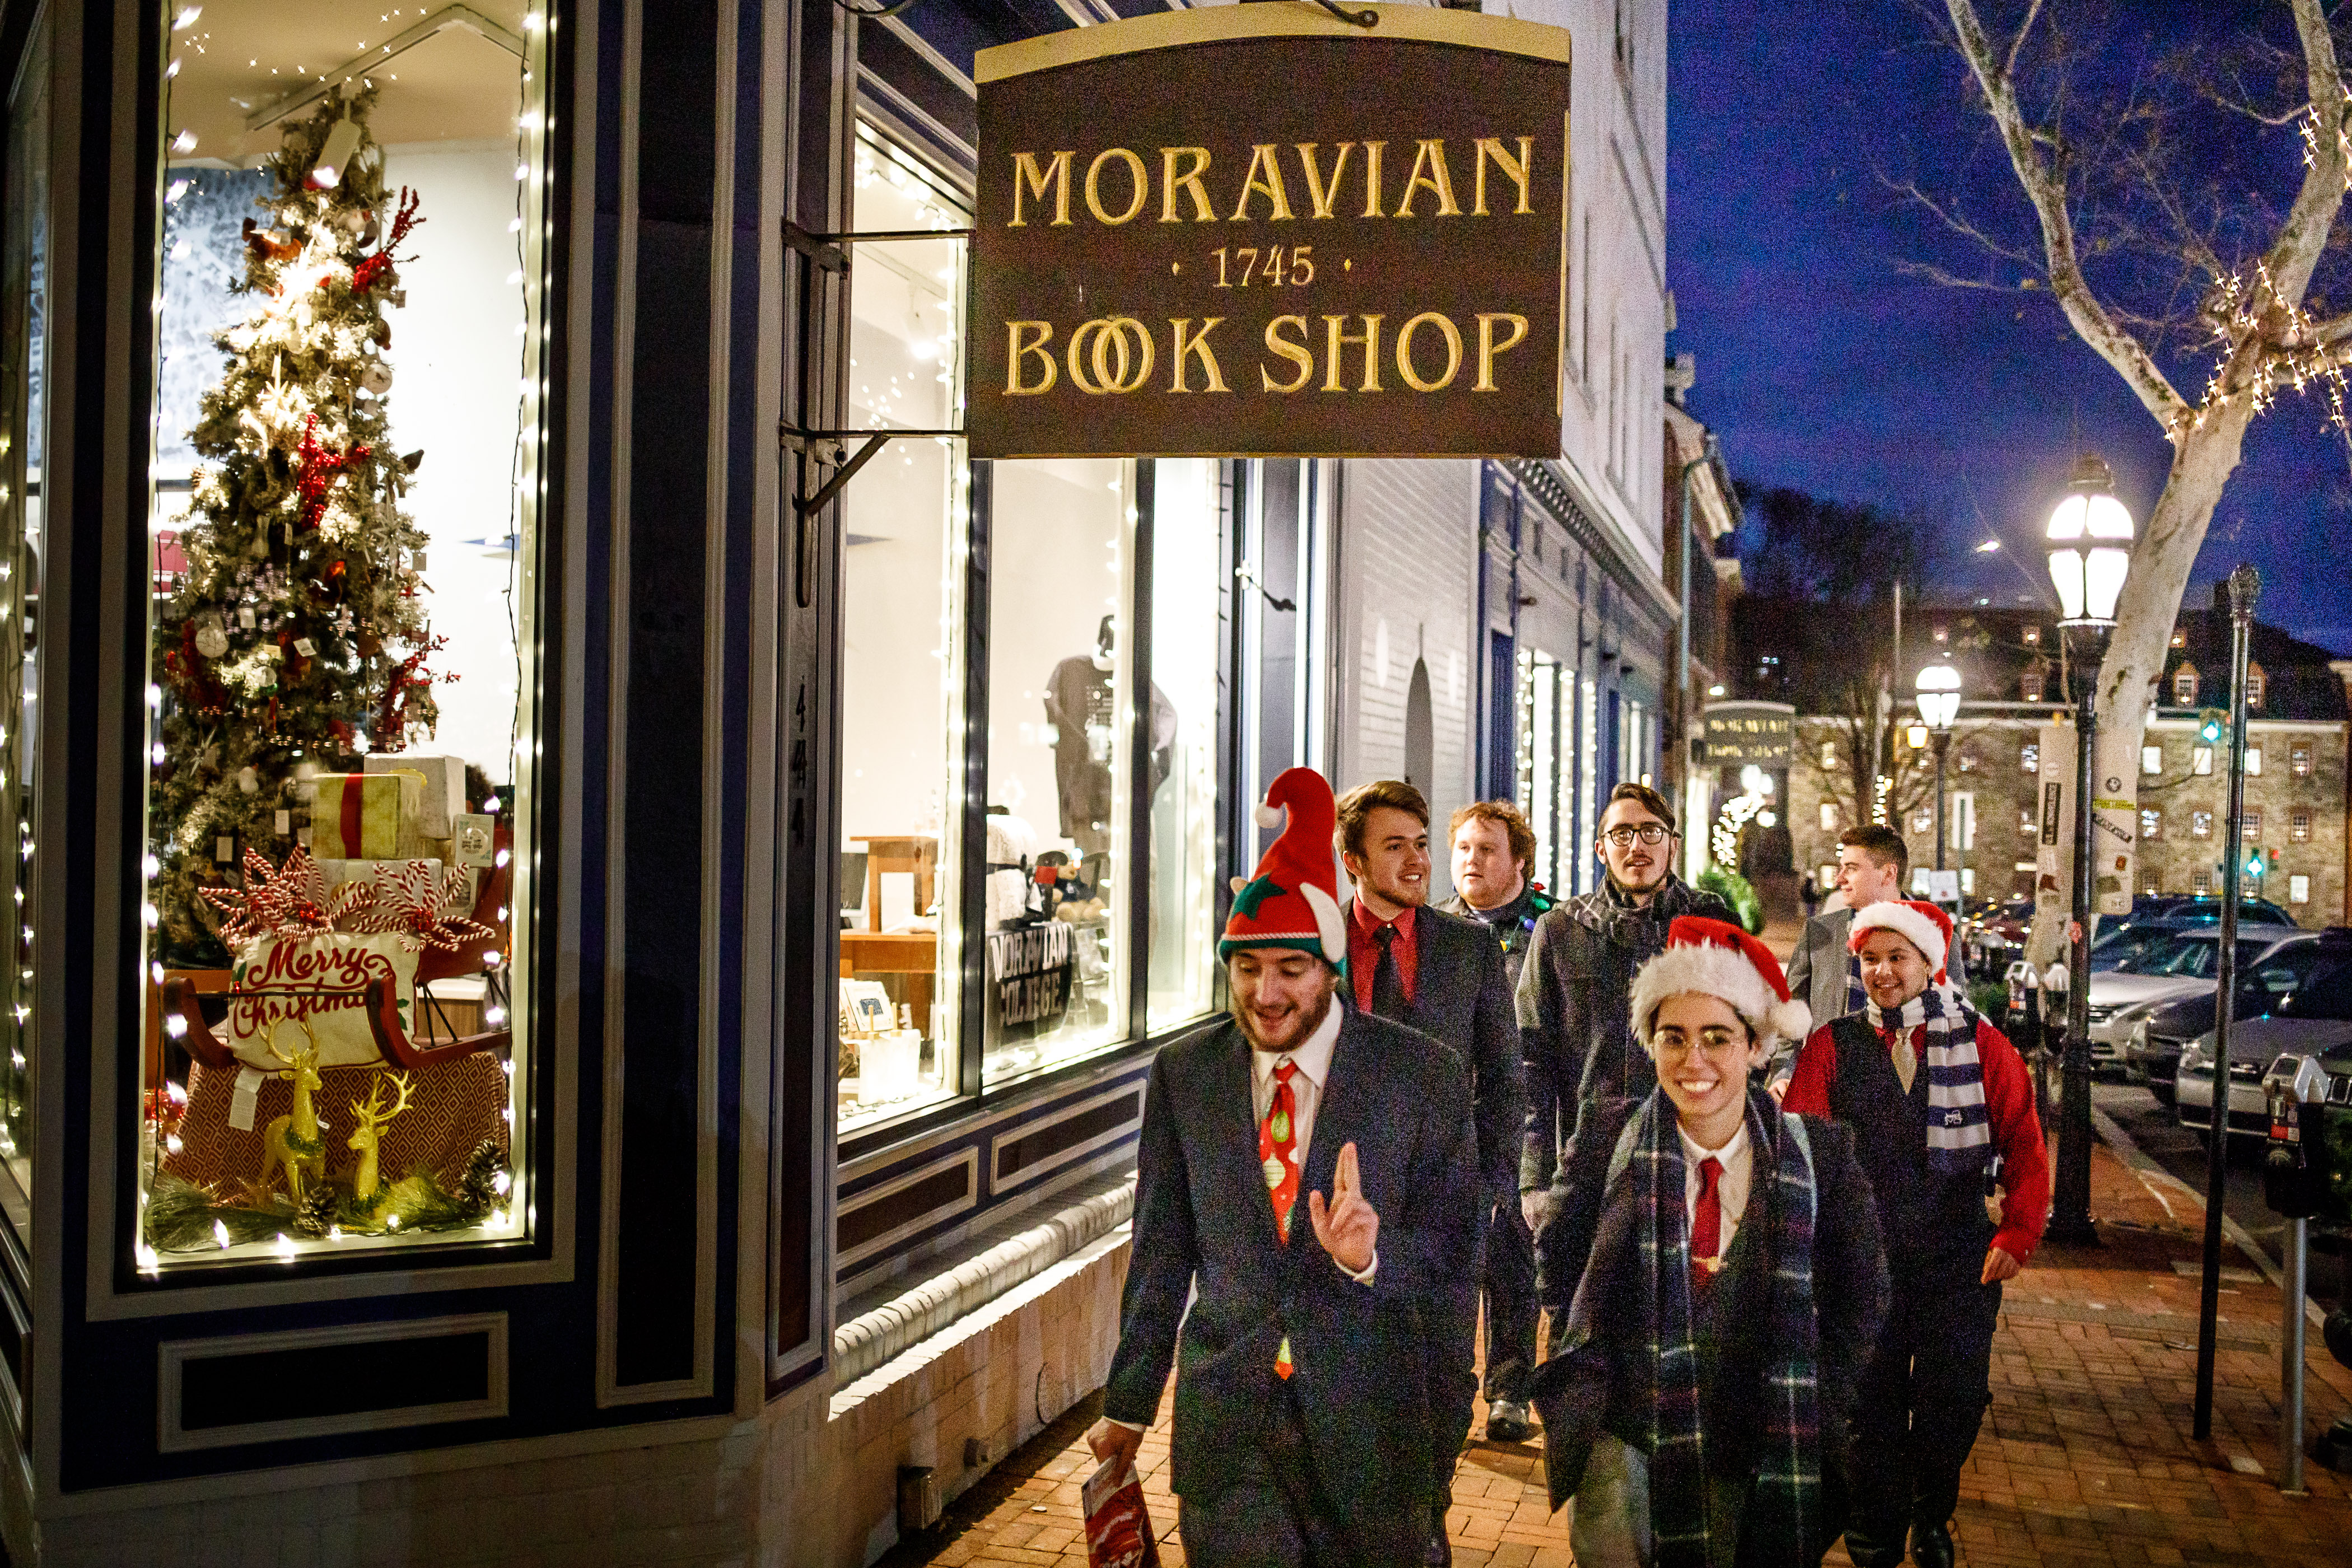 Students walk past the Moravian Book Shop